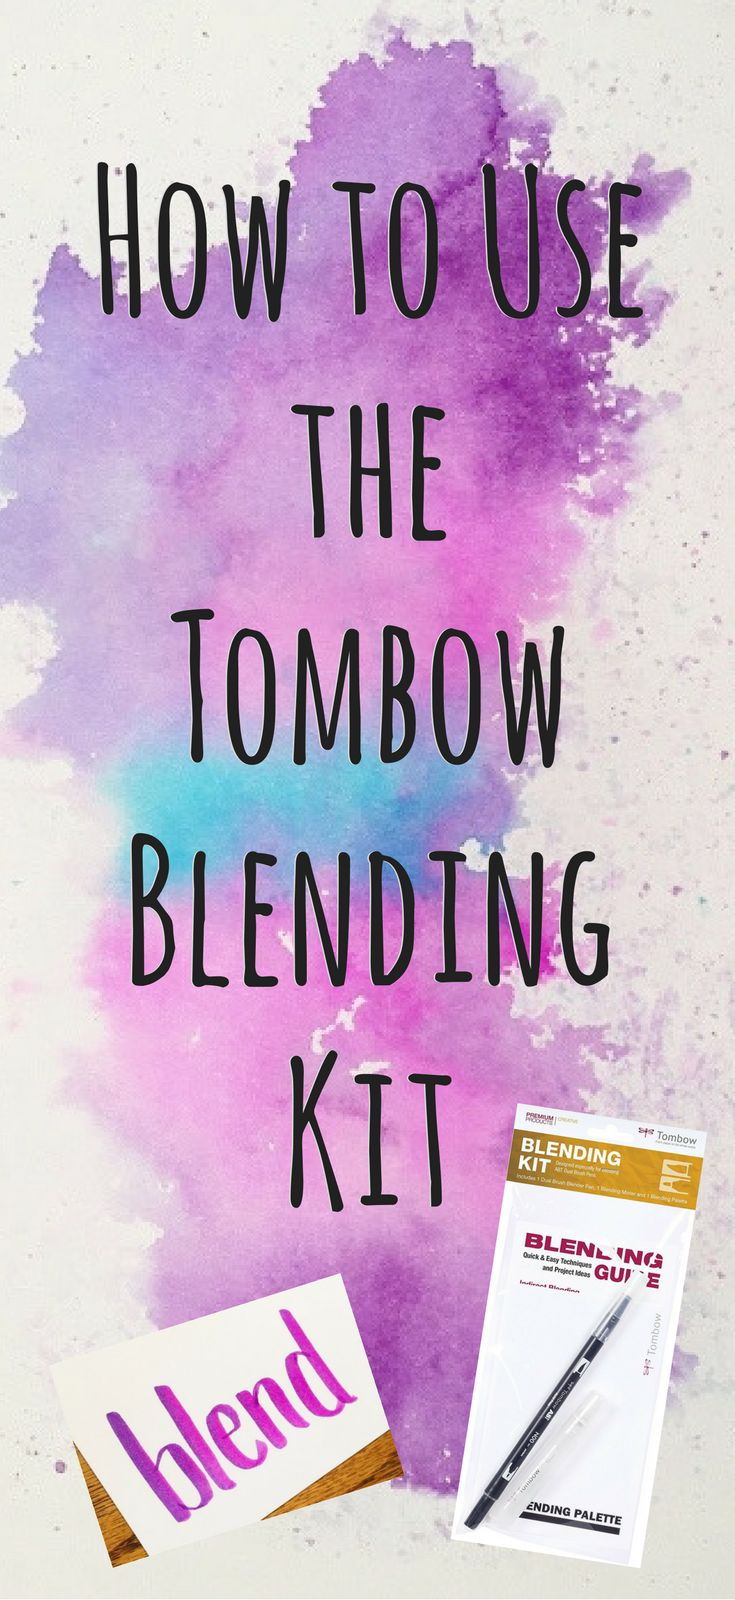 How to Use the Tombow Blending Kit